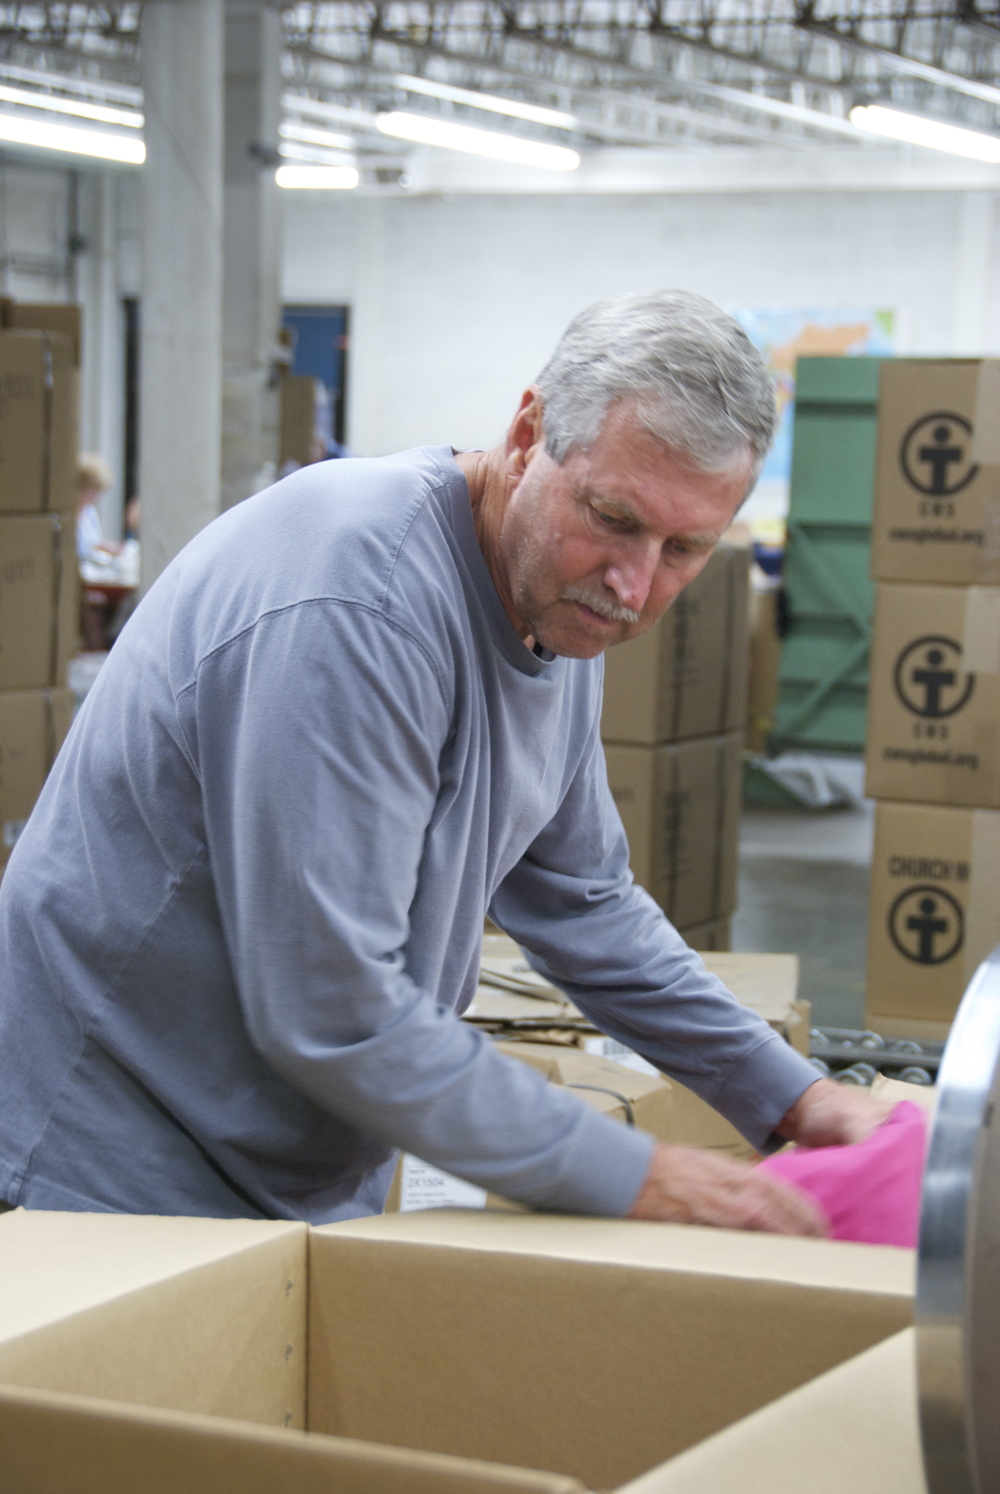 Dan Namet helps by packing boxes on a Church World Service mission trip